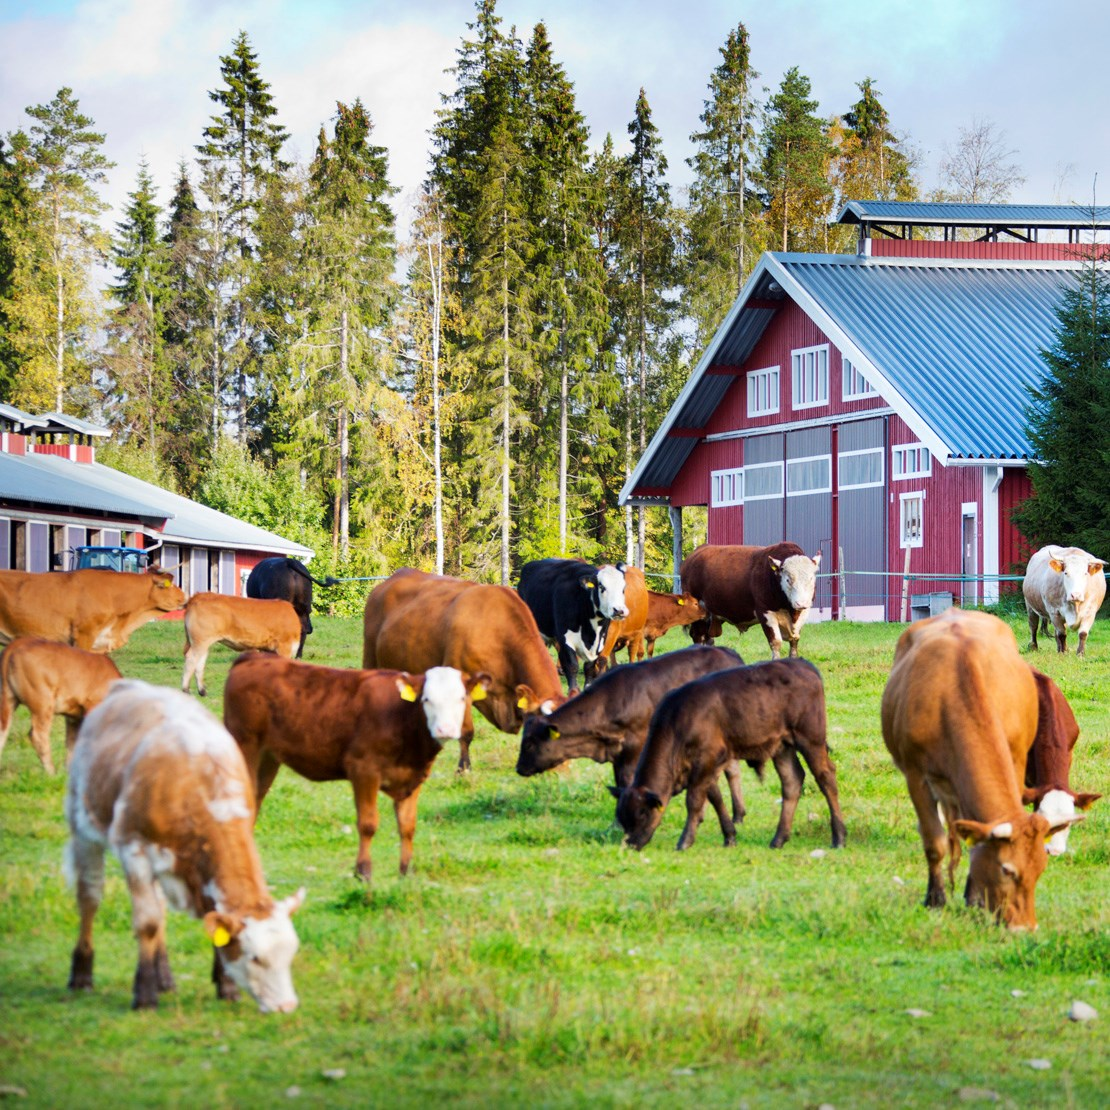 Nordic meat is environmentally friendly